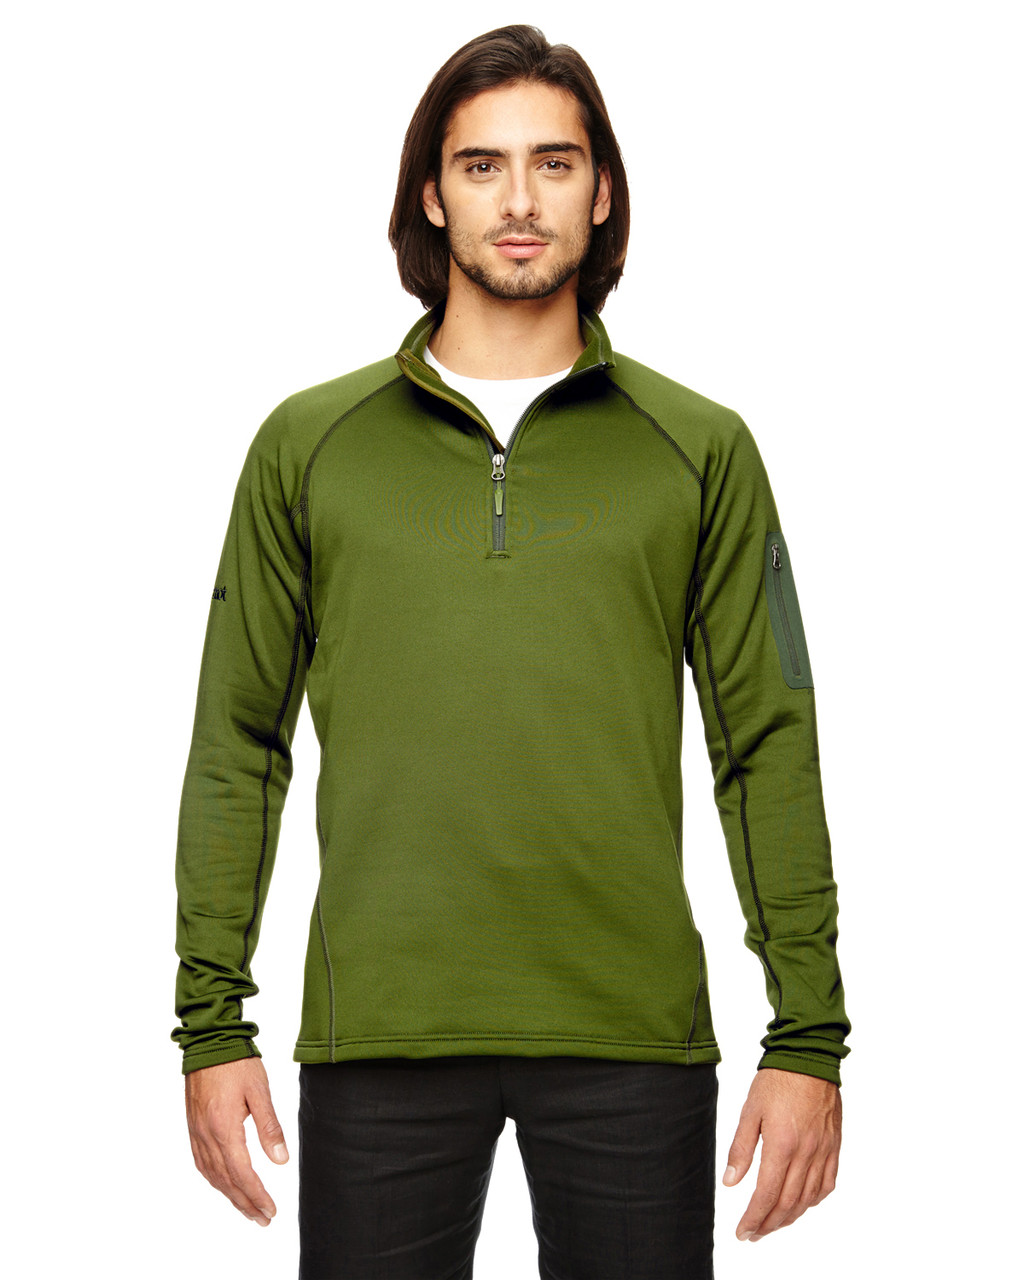 Greenland - 80890 Marmot Men's Stretch Fleece Half-Zip Sweatshirt | BlankClothing.ca